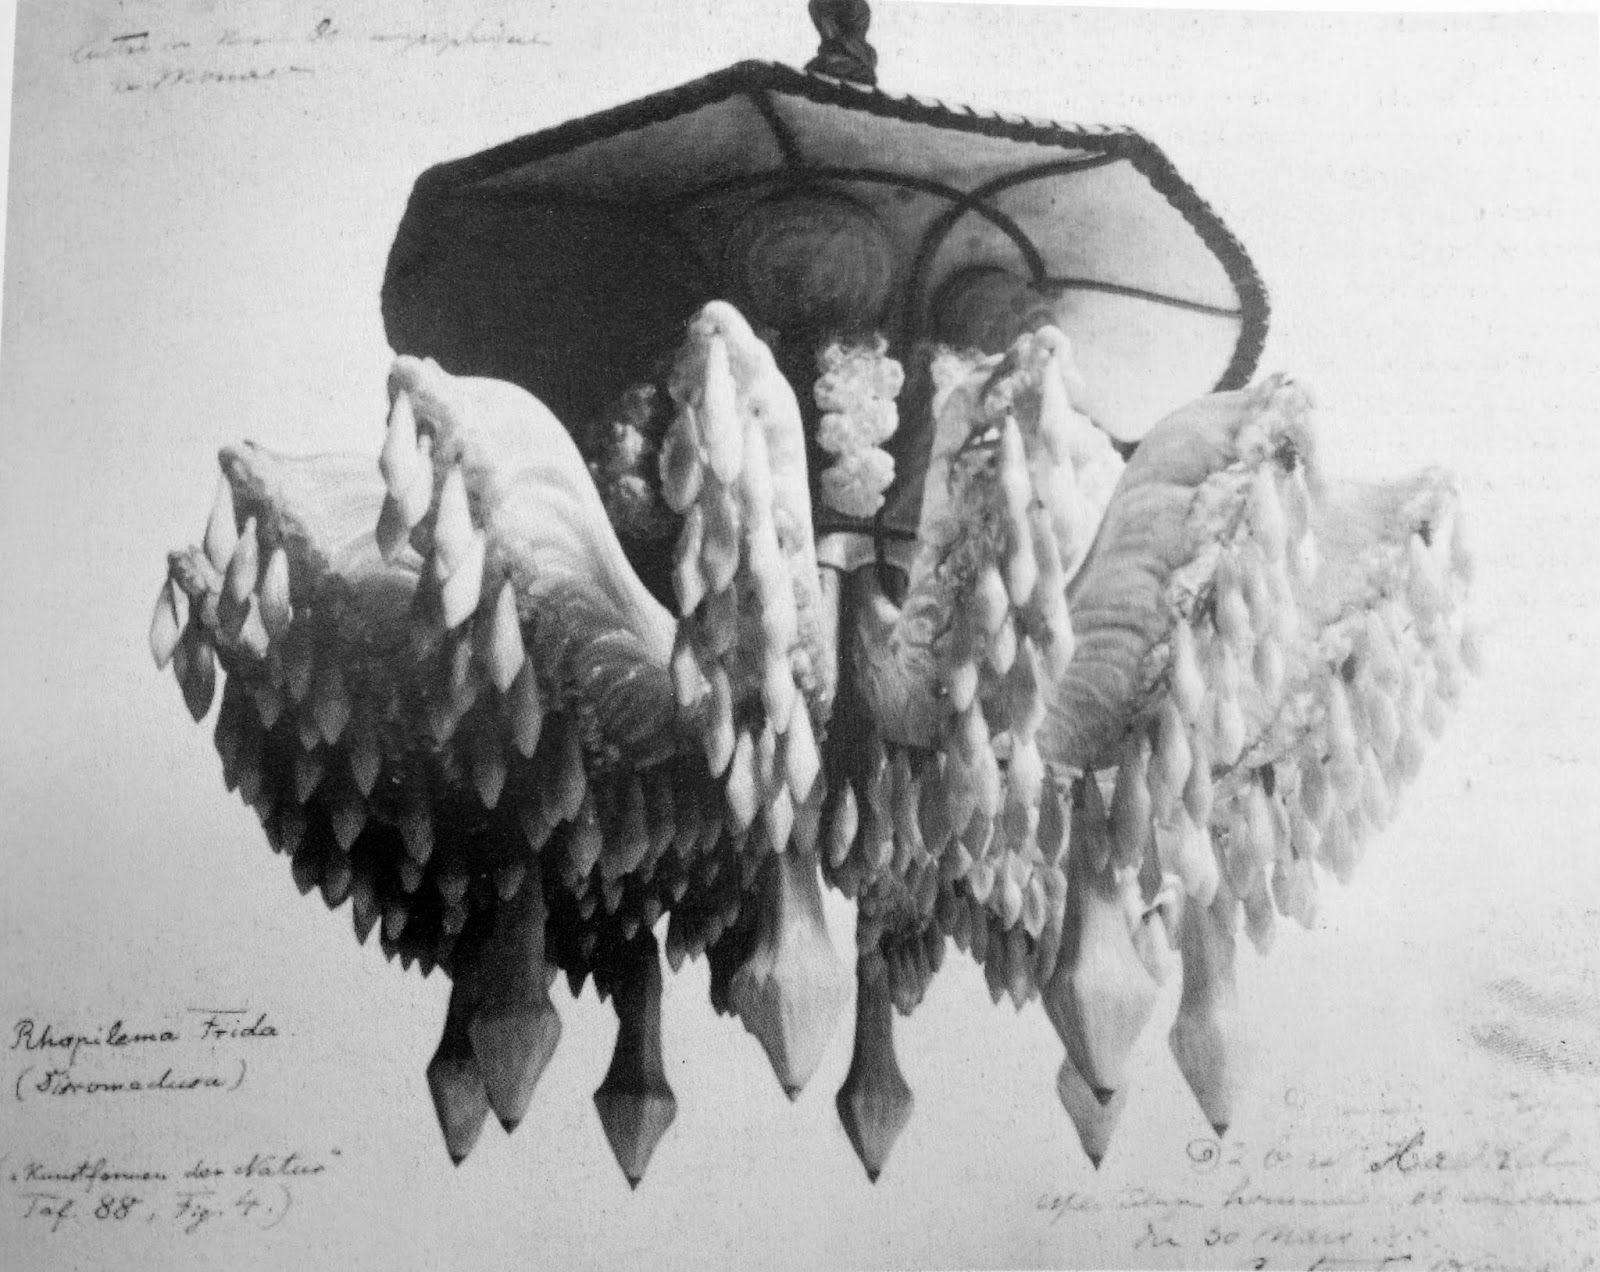 A trip to the sea ernst haeckel and the man of war at home afield glass chandelier from the oceanographic museum in monaco modelled after an ernst haeckel drawing found arubaitofo Images